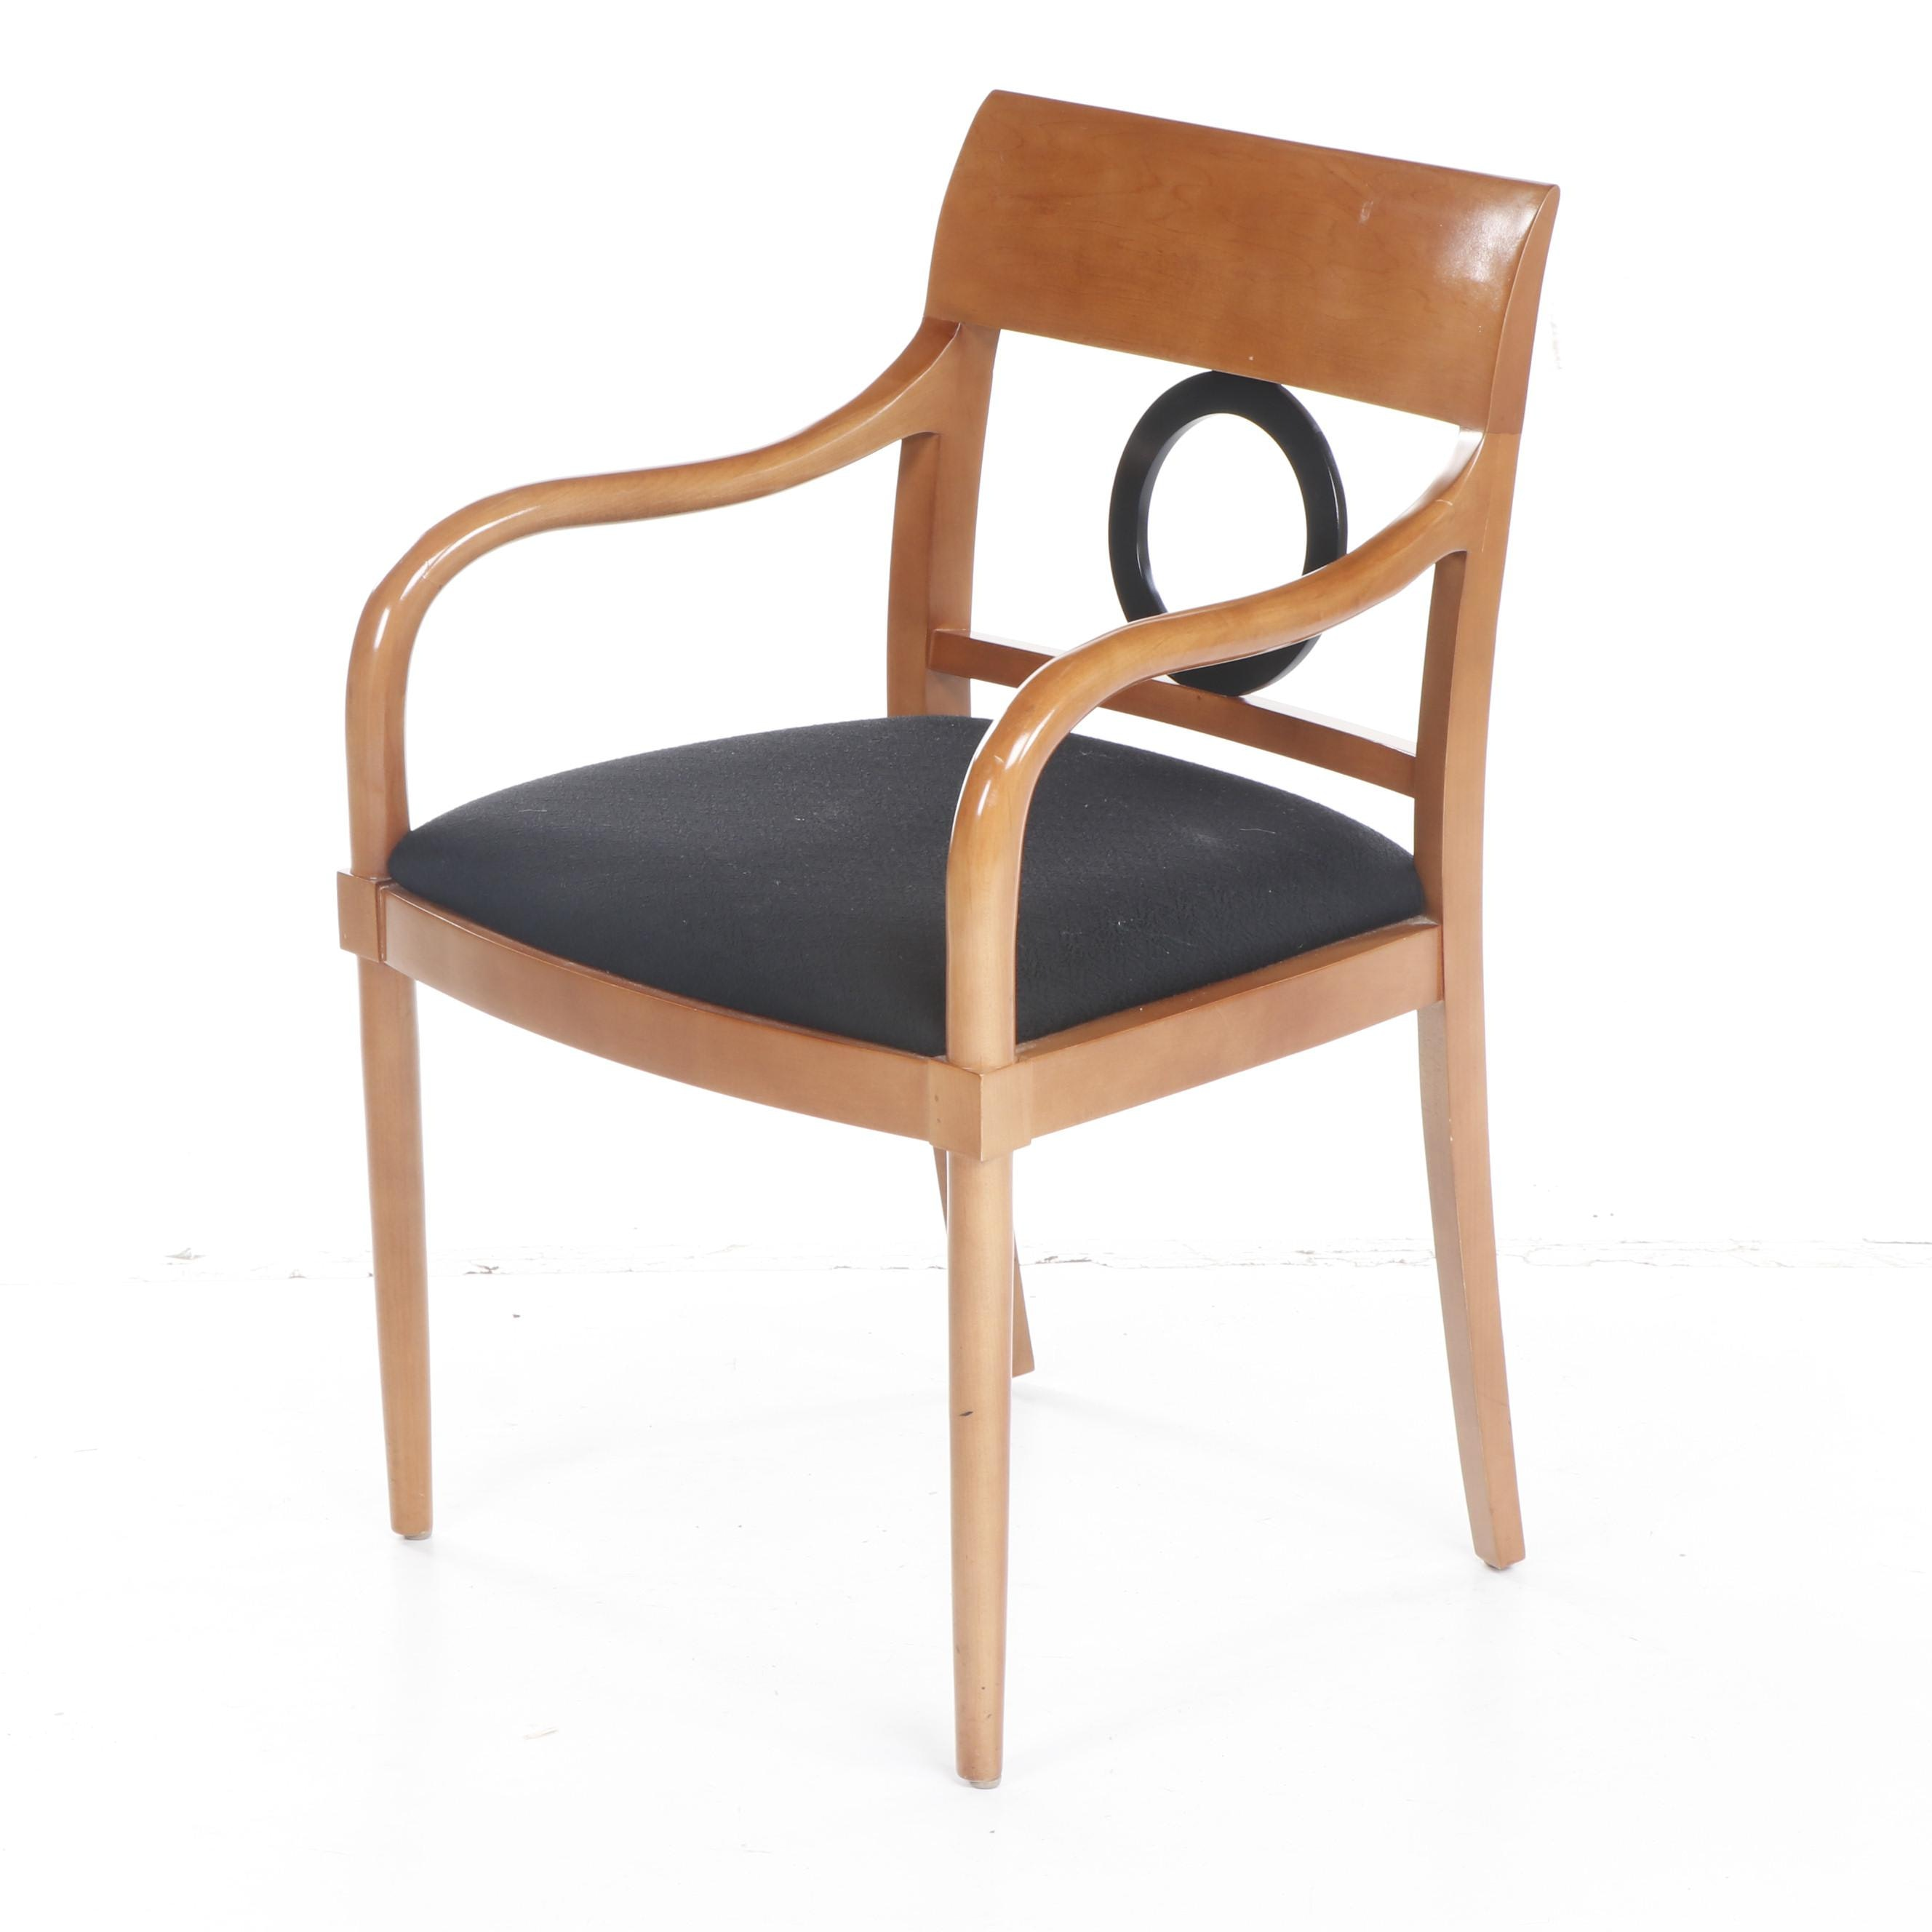 Bernhardt Modern Blonde and Parcel-Ebonized Wood Armchair, Late 20th Century